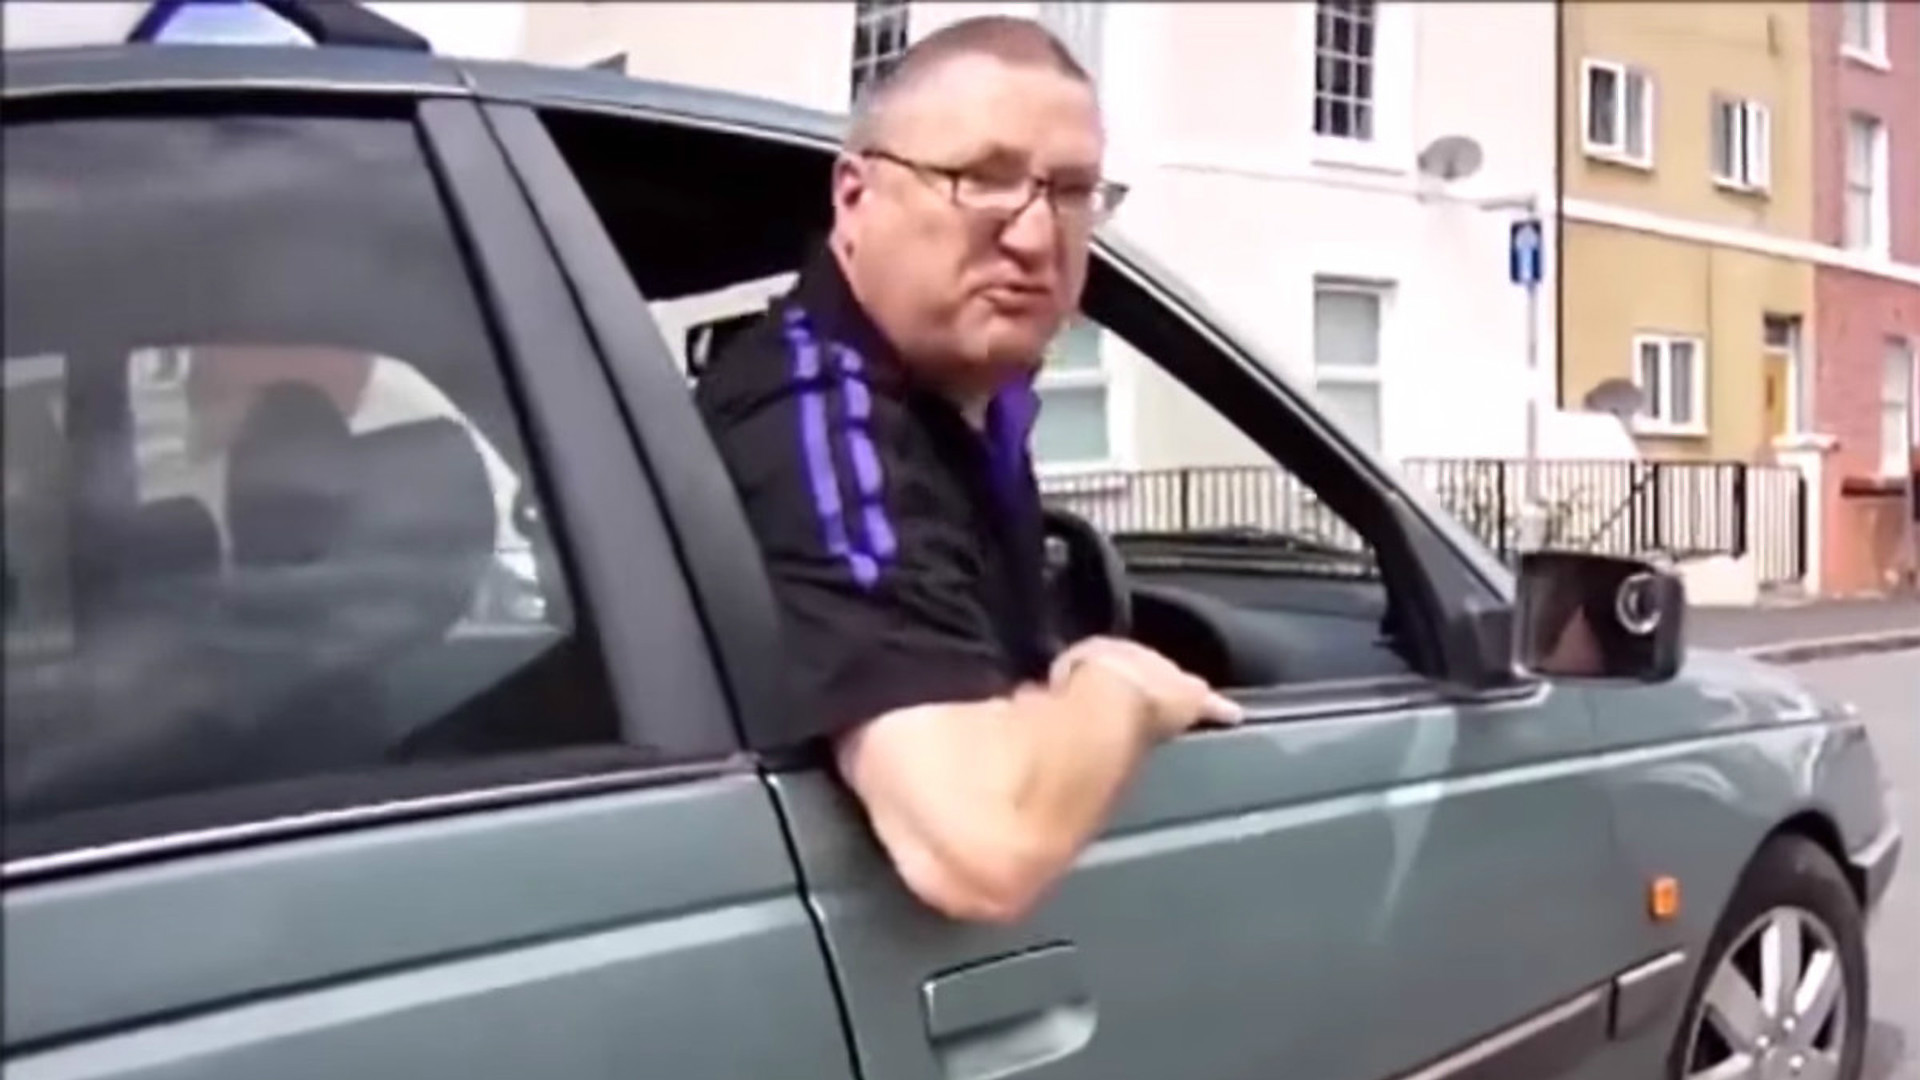 Road rage on the rise in the UK.